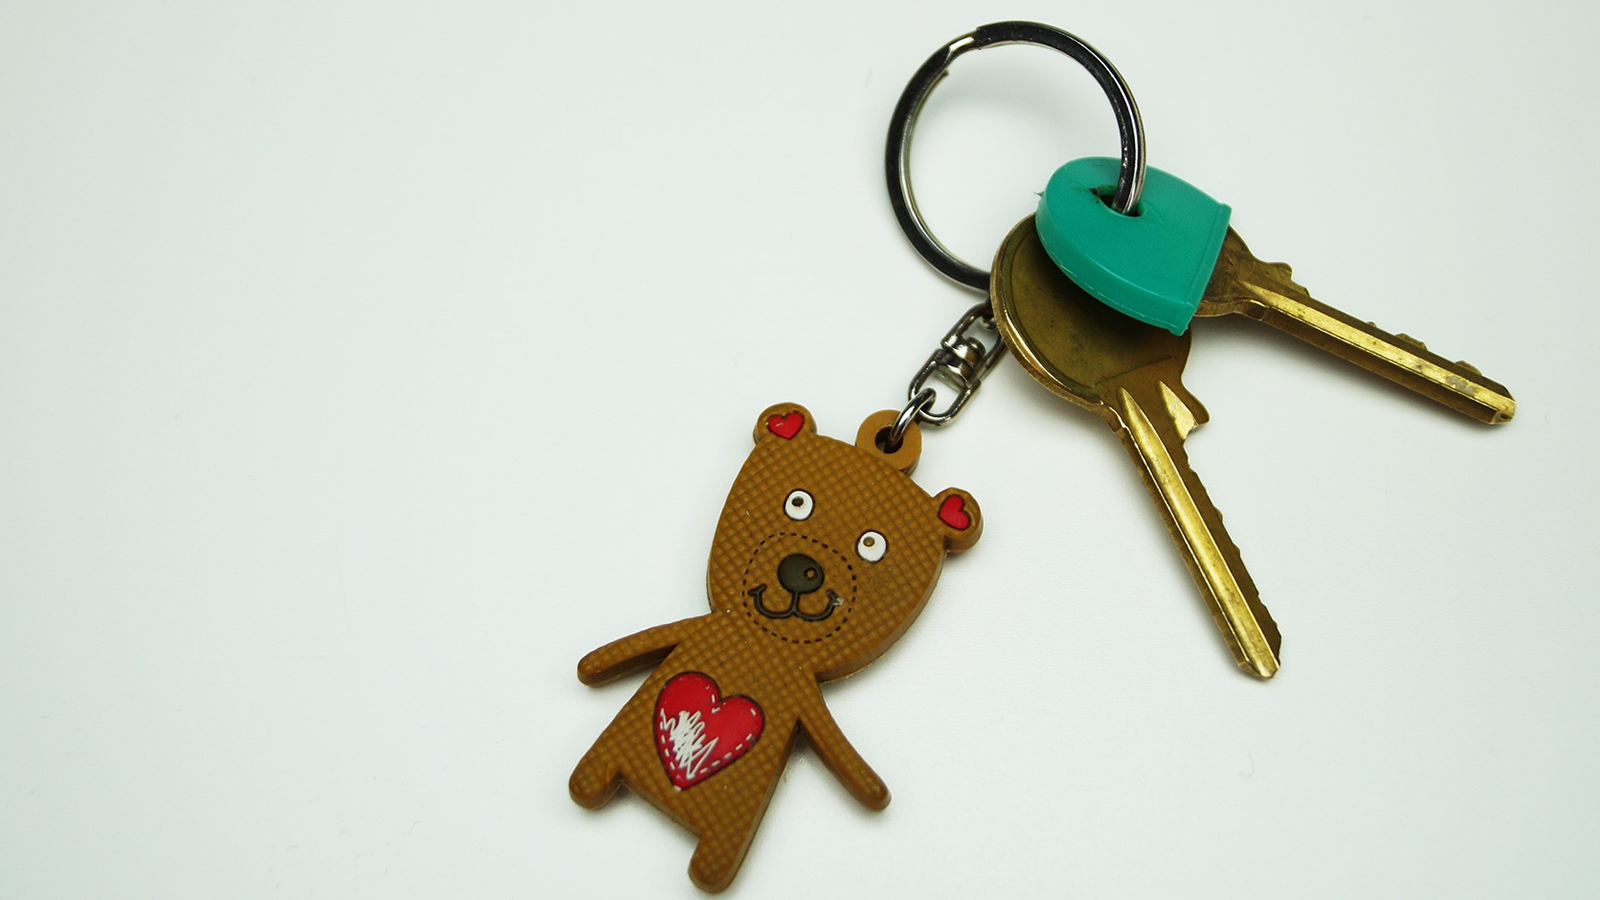 16x9_key_teddy